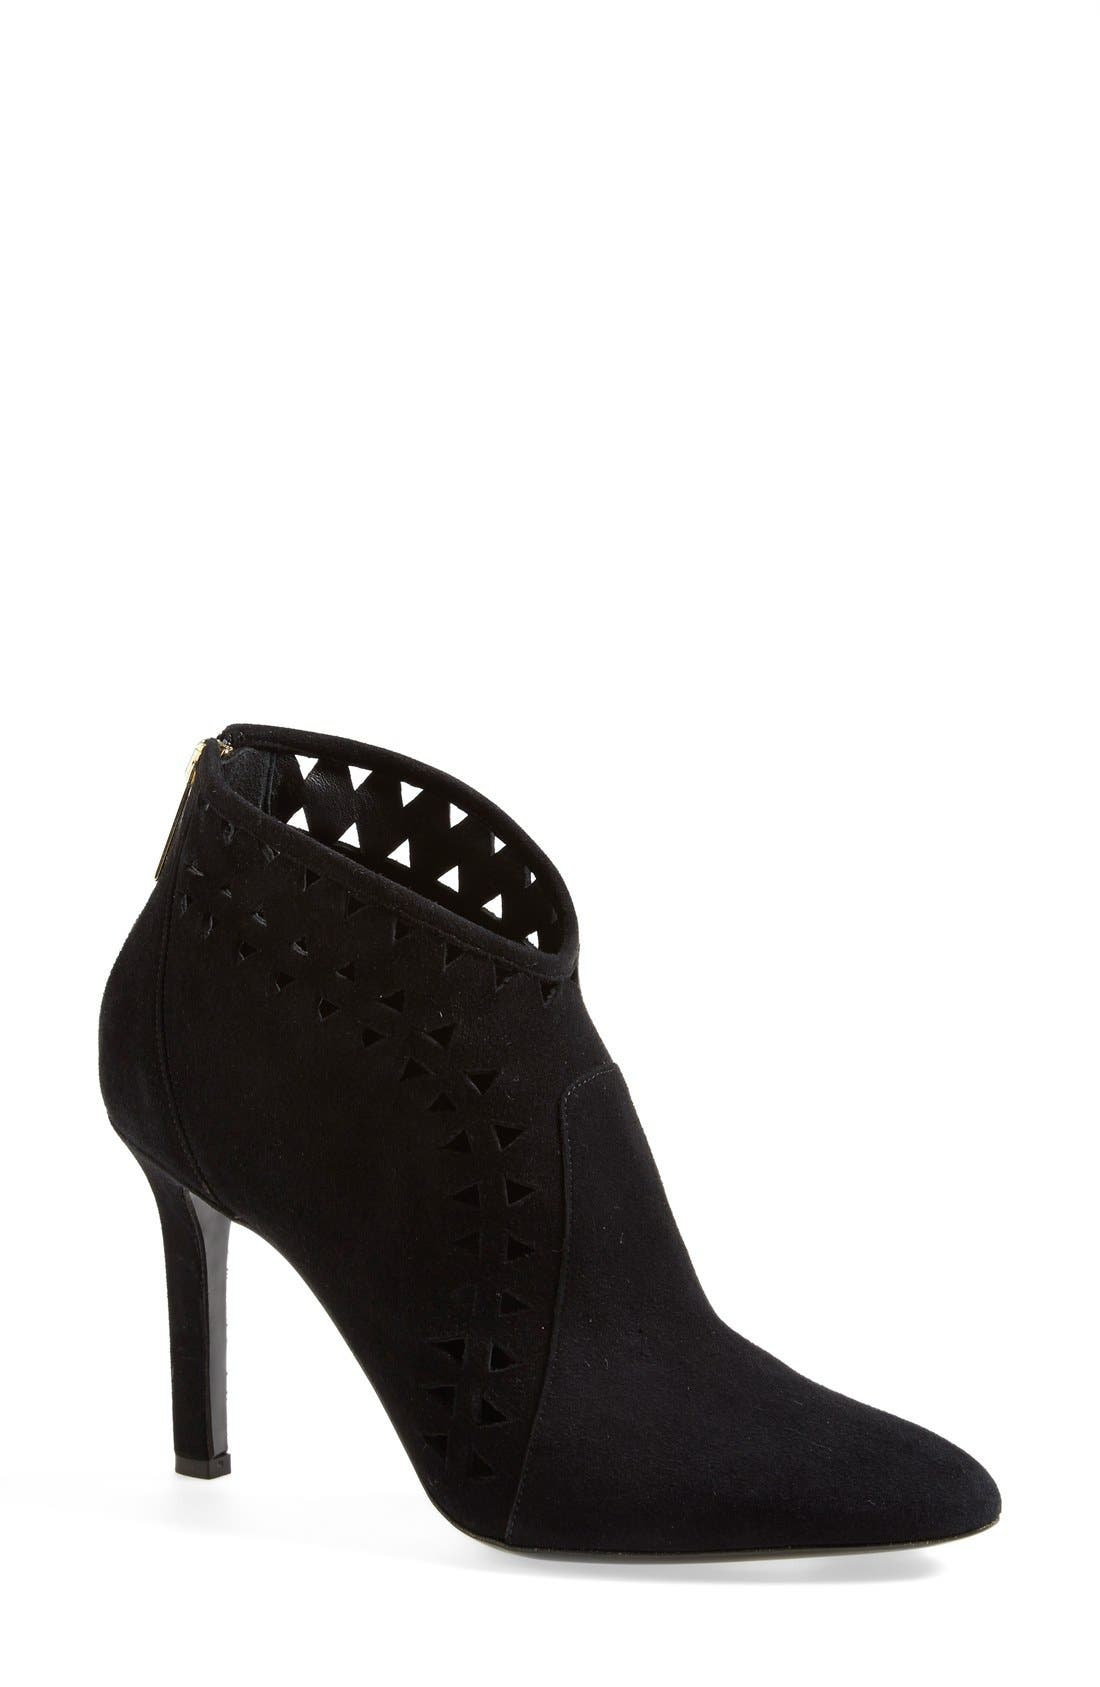 Alternate Image 1 Selected - Tamara Mellon 'French Kiss' Suede Bootie (Women)